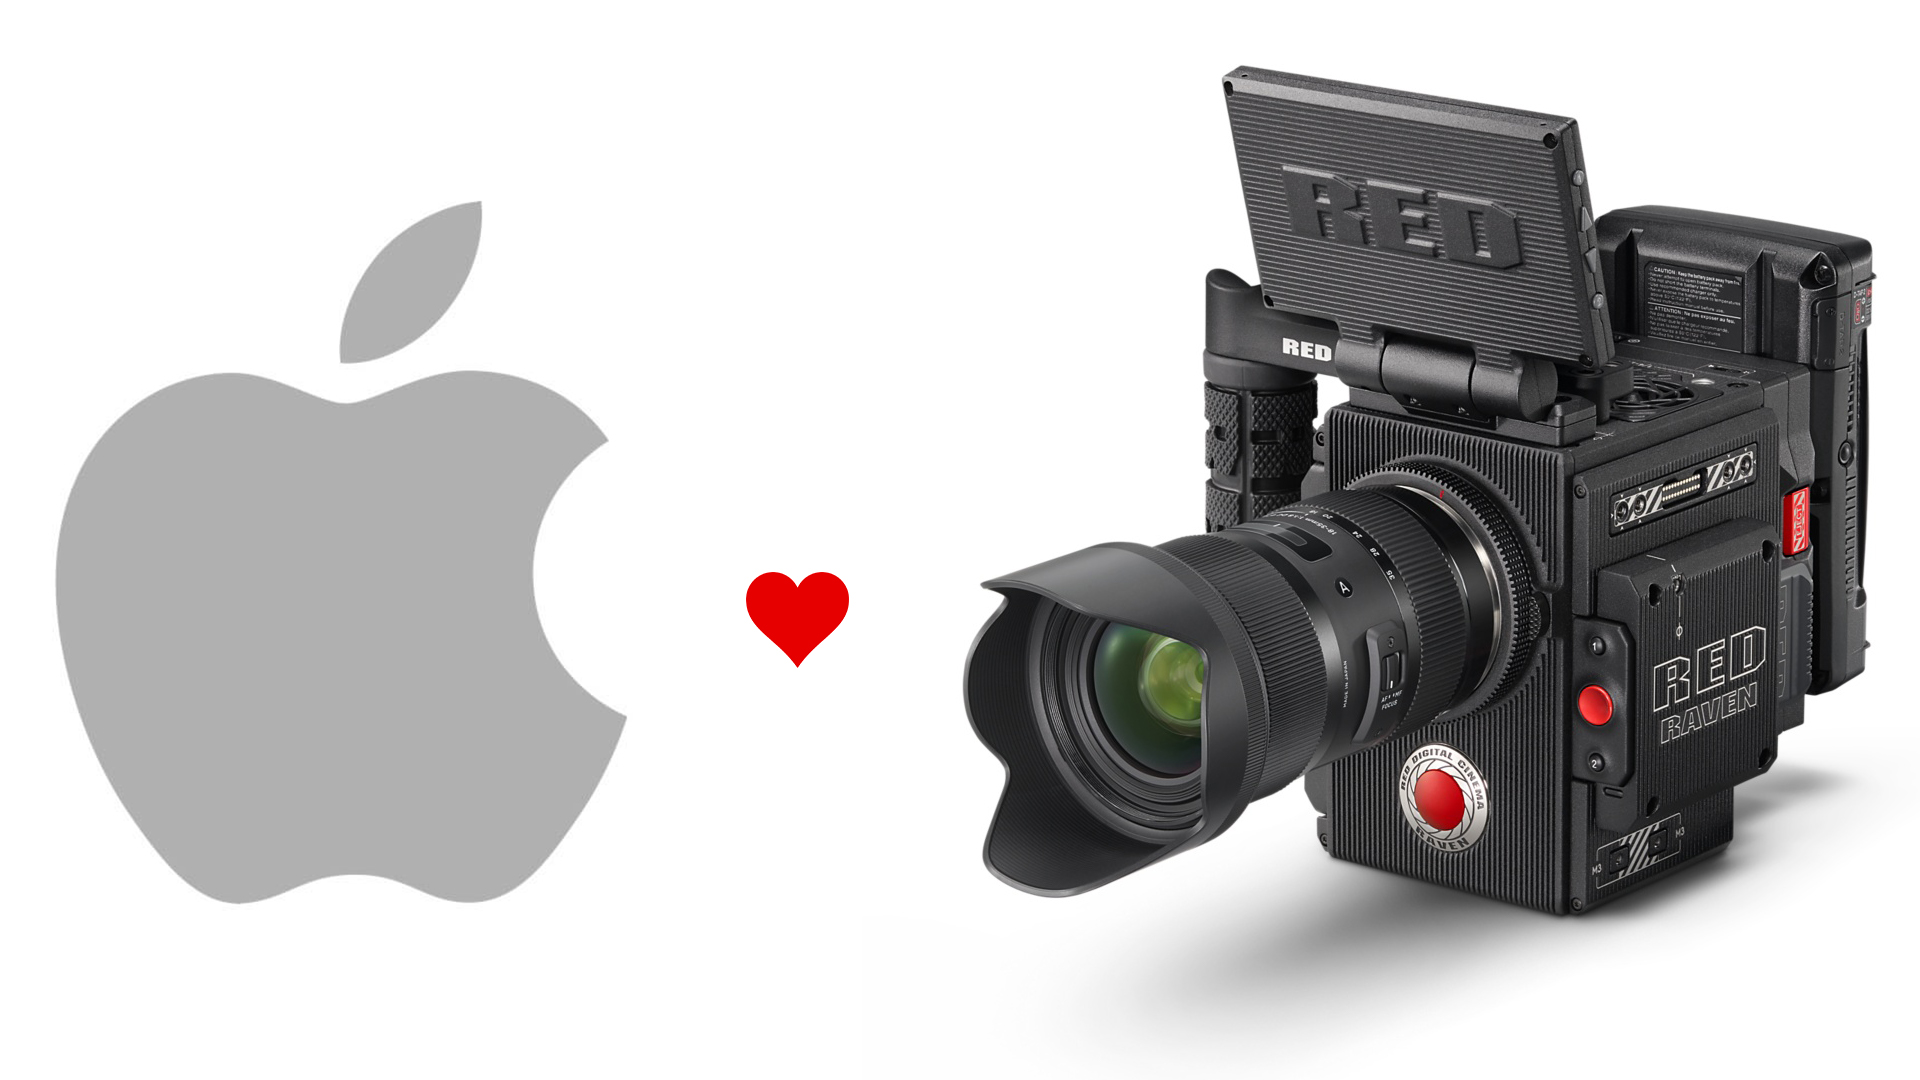 Red raven camera kit now sold exclusively through apple for Camera and camera